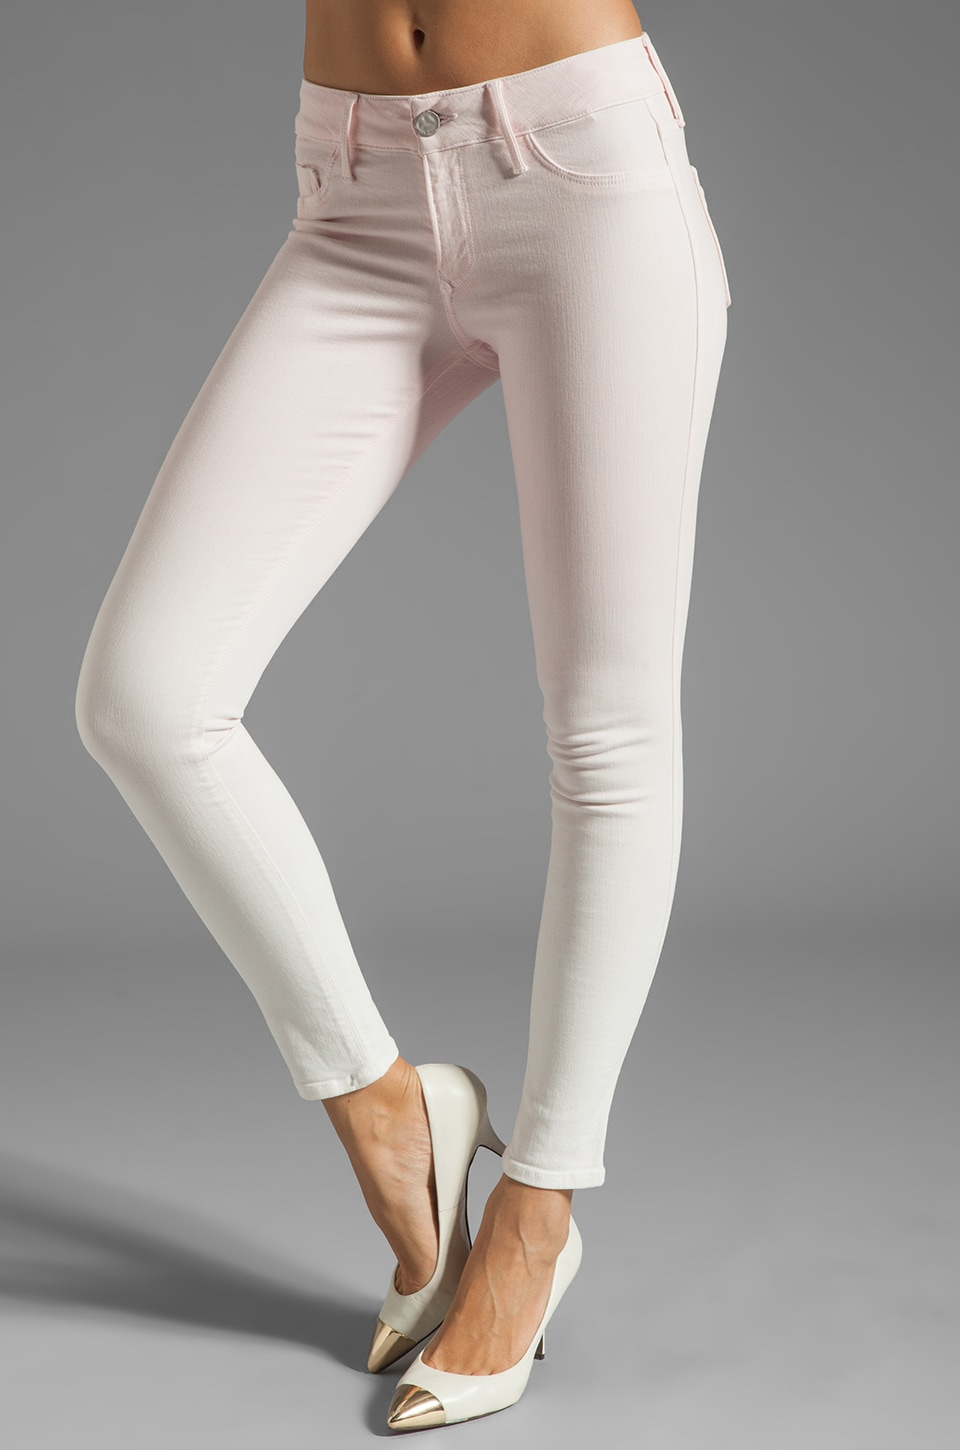 Black Orchid Ombre Mid Rise Skinny in Cotton Candy